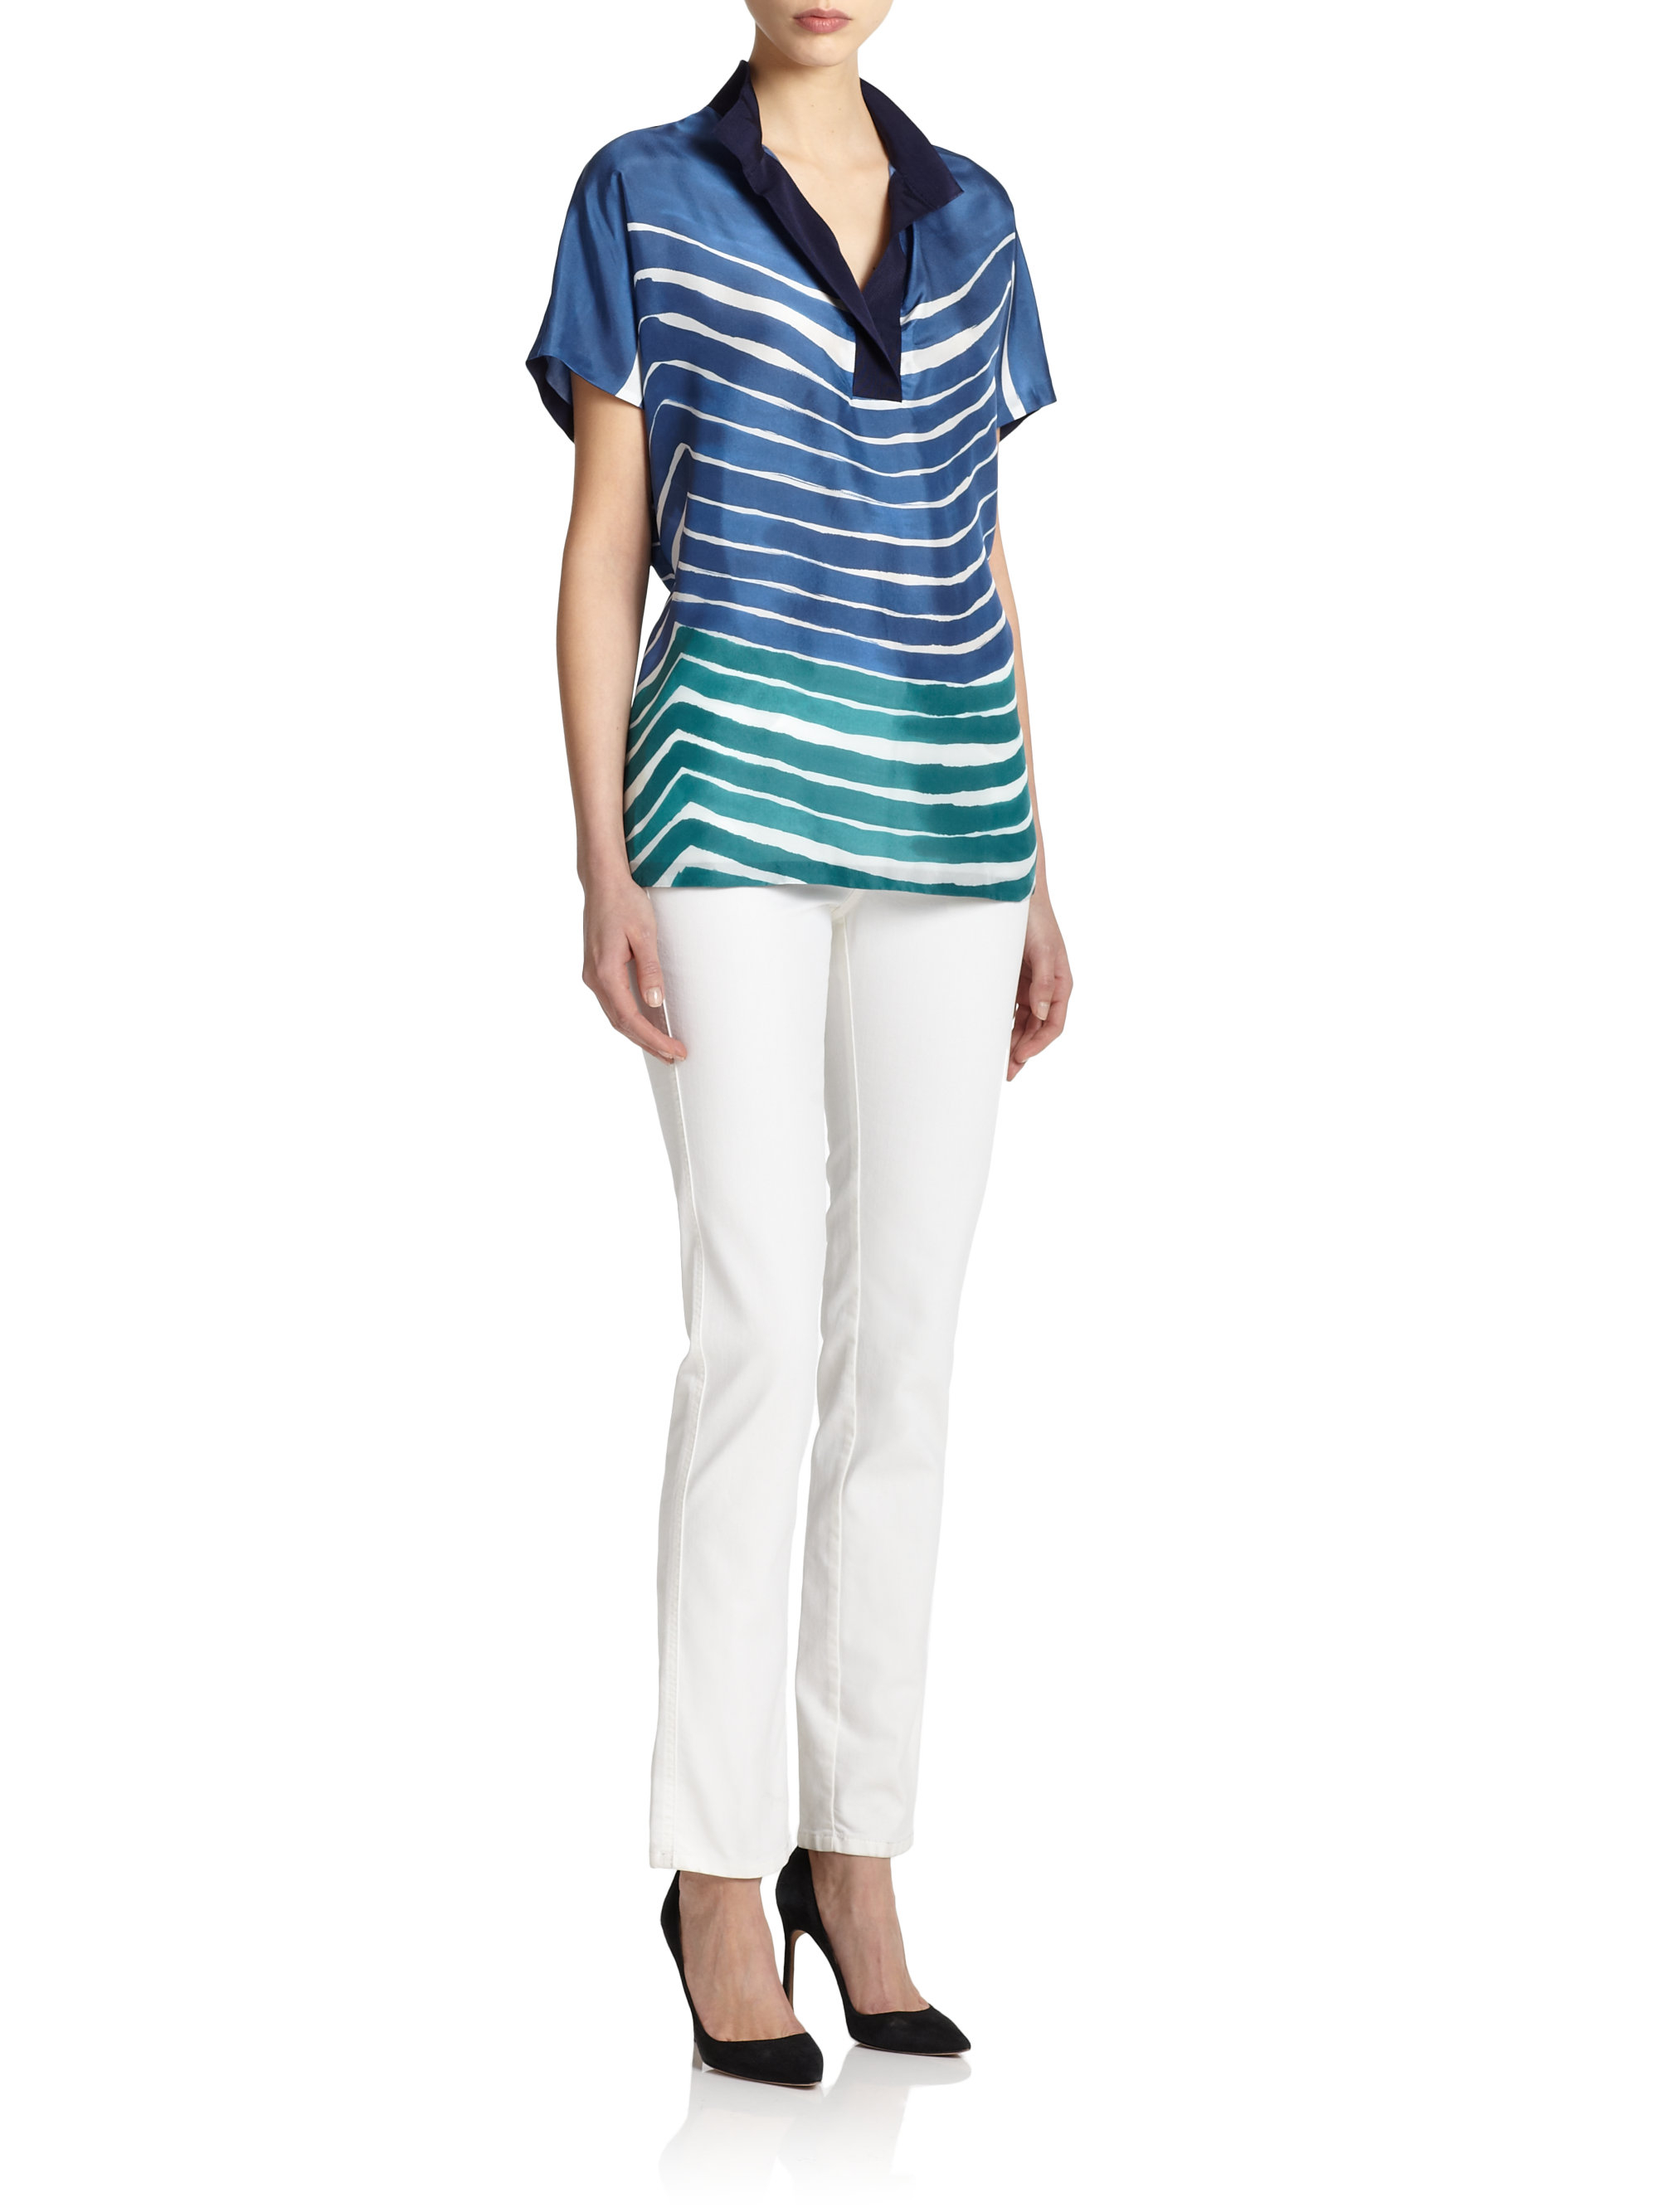 148 Best Images About Craft Ideas For Girls On Pinterest: Lafayette 148 New York Silk Striped Top In Blue